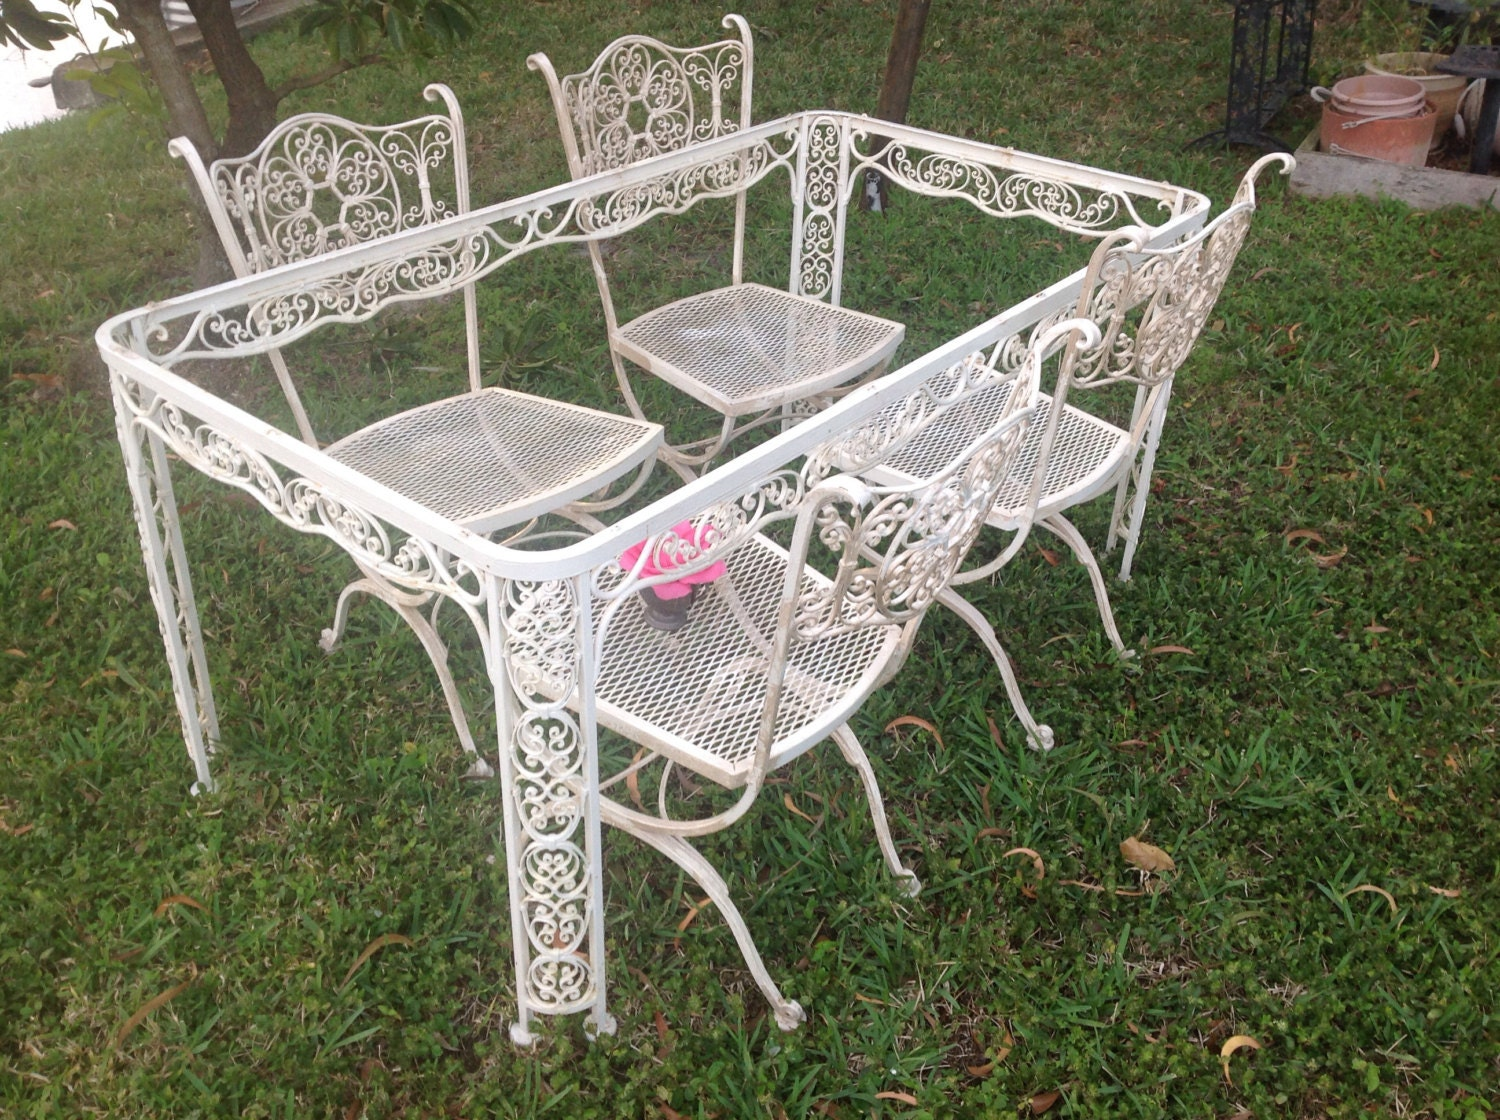 Vintage Wrought Iron Patio Furniture 28 Images Vintage Wrought Iron Patio Set Dogwood